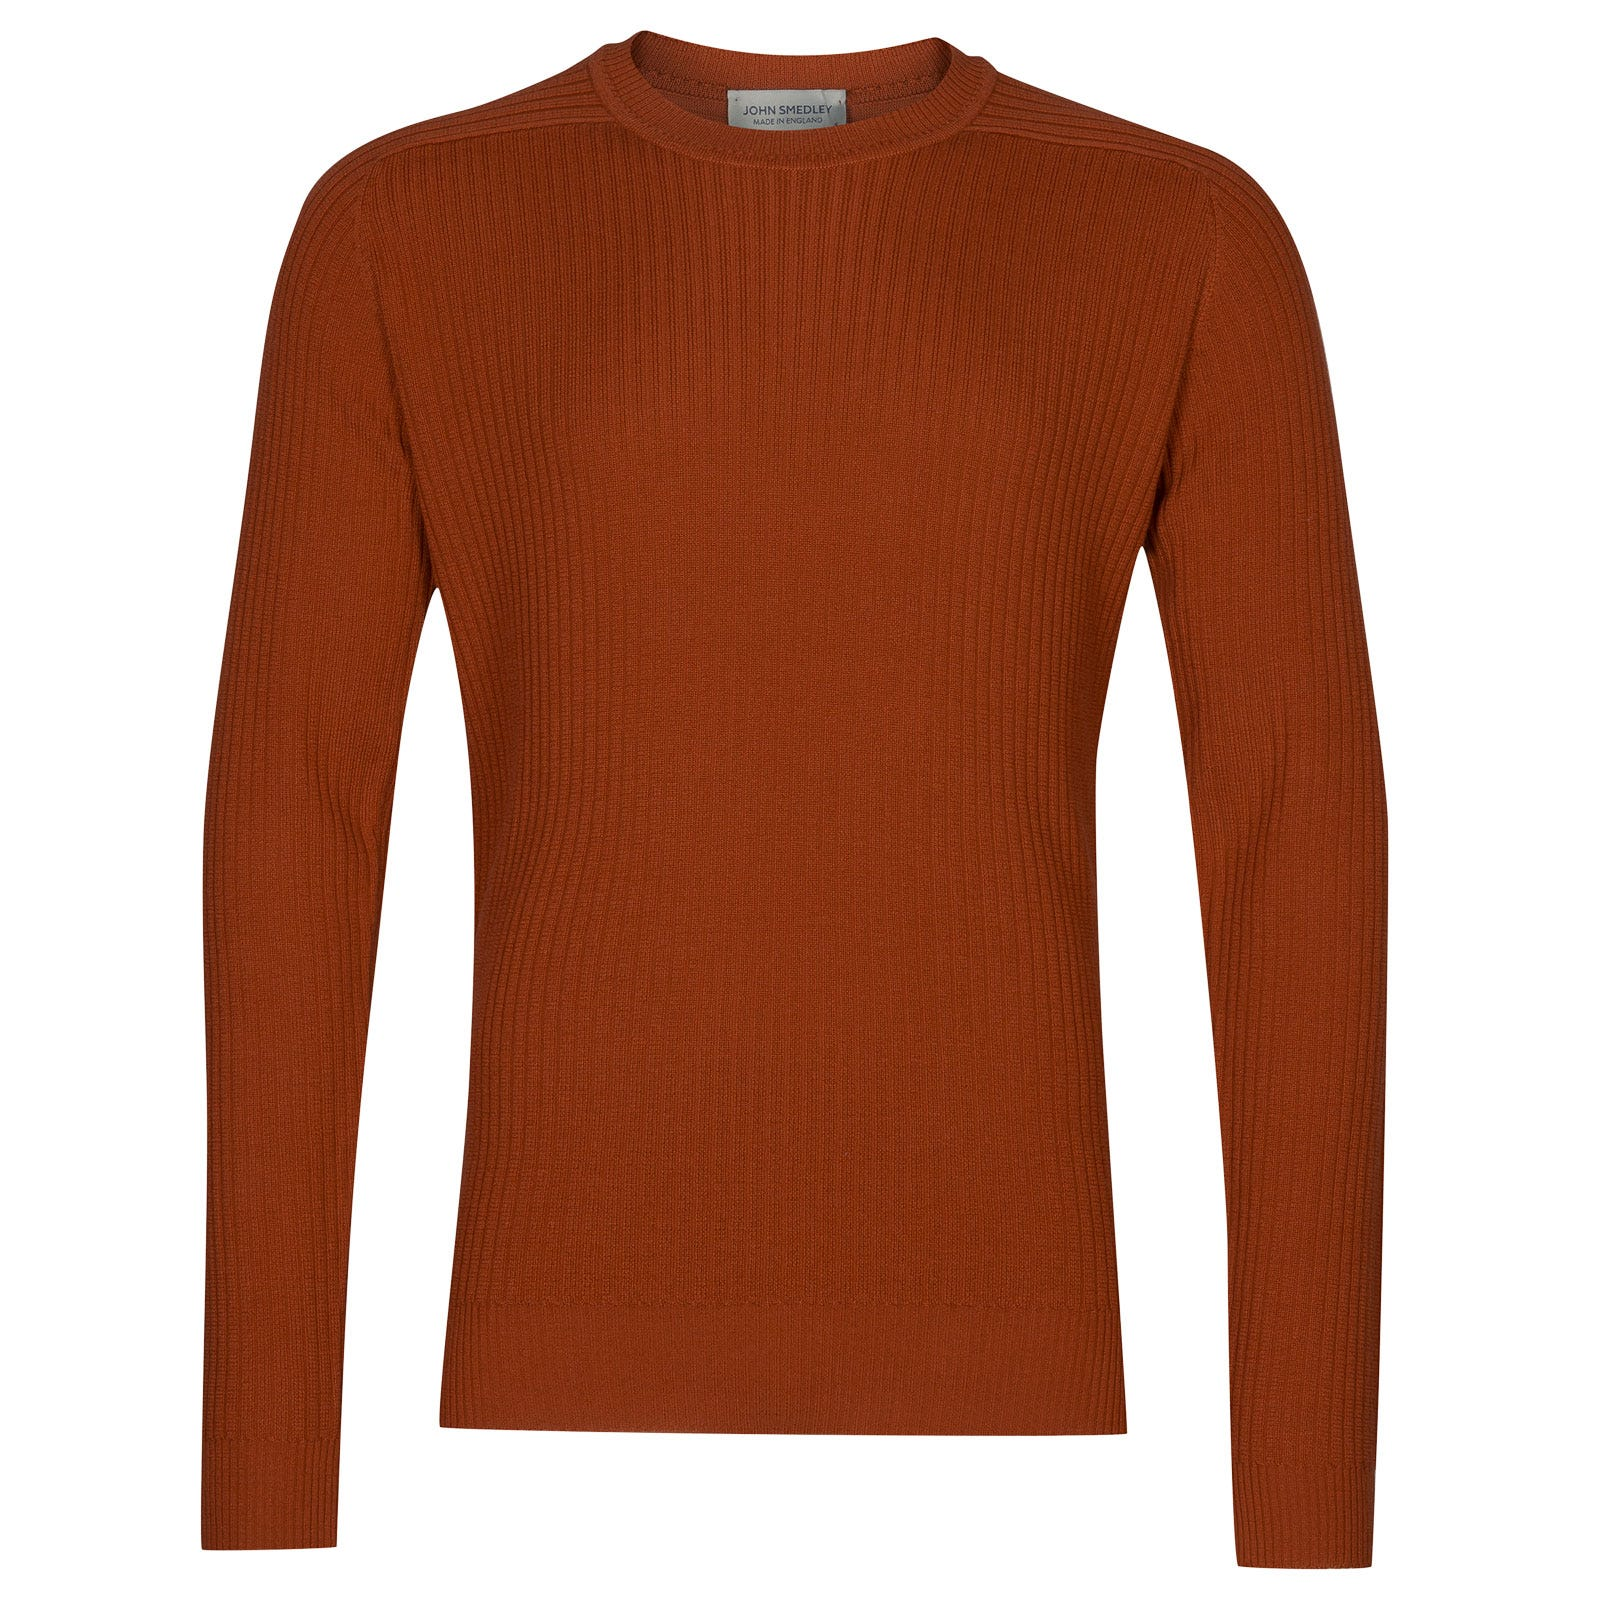 John Smedley idris Merino Wool Pullover in Flare Orange-XL